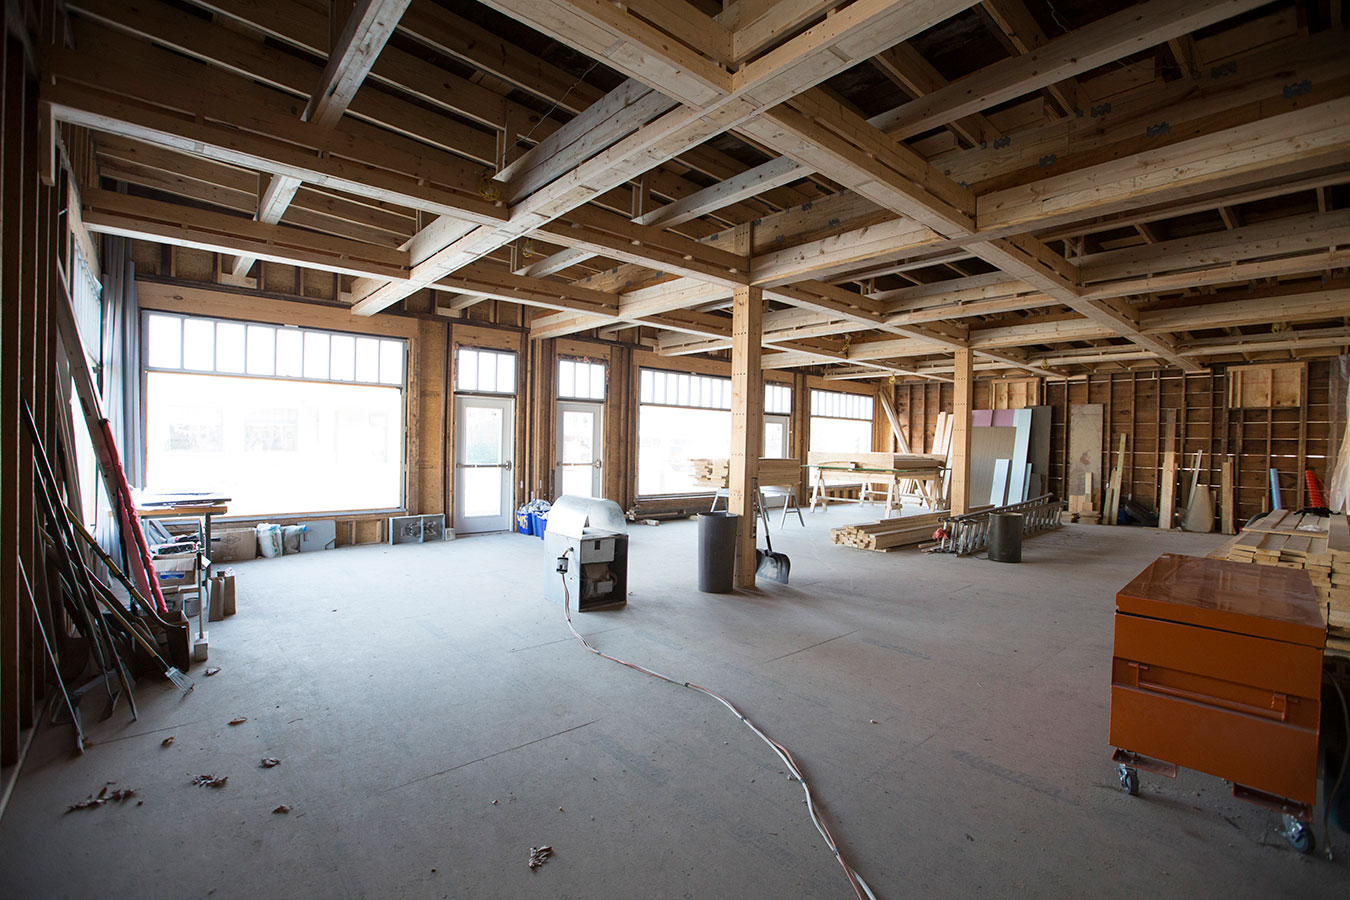 The room facing Rogers Street will be the Pictura Gallery space. | Photo by Chaz Mottinger, courtesy of Pictura Gallery